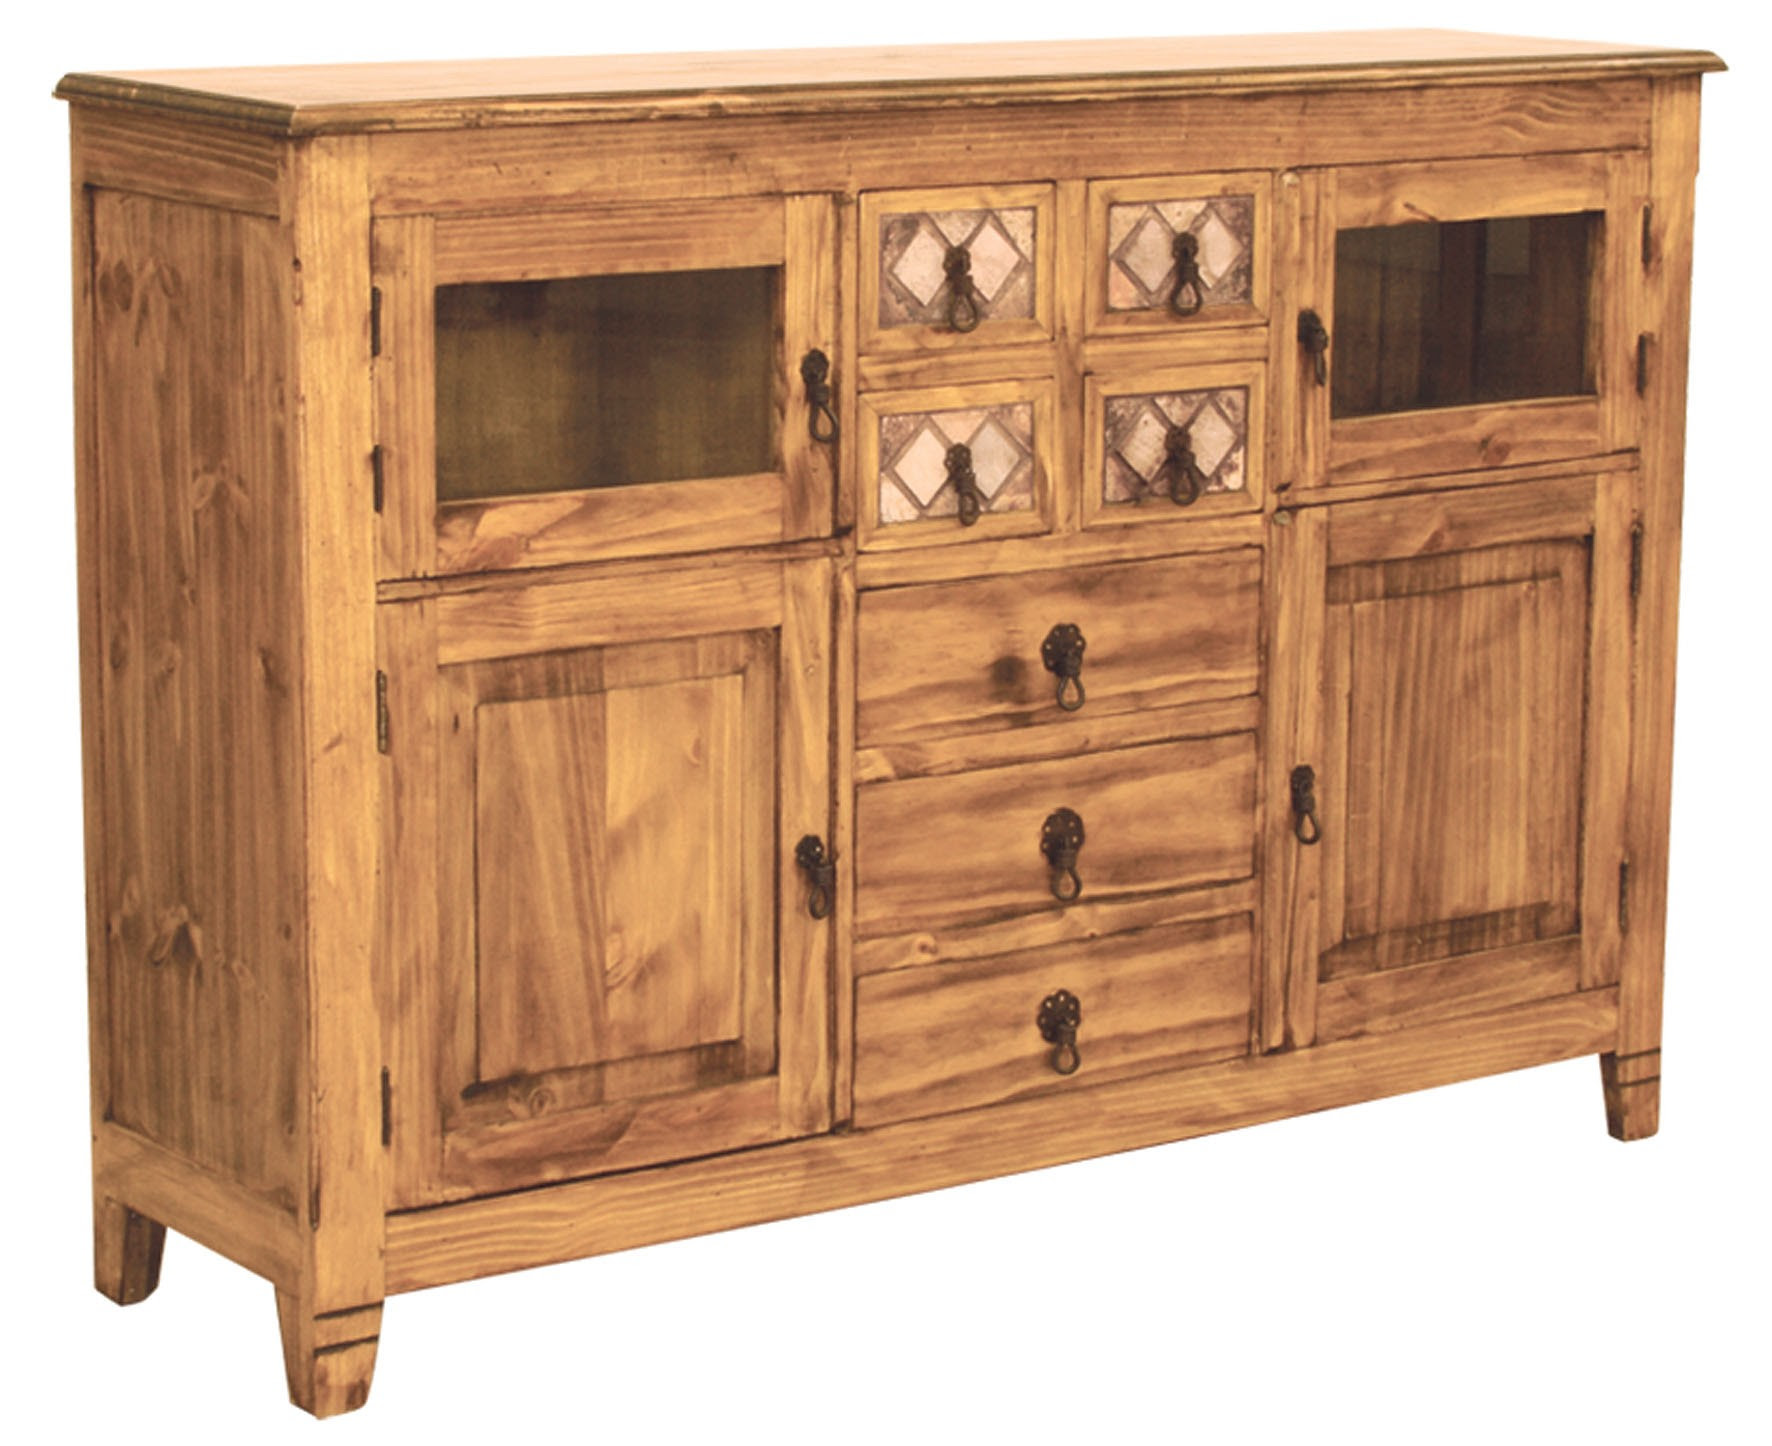 Marble And Pine Rustic Sideboard and Buffet Dining Furniture